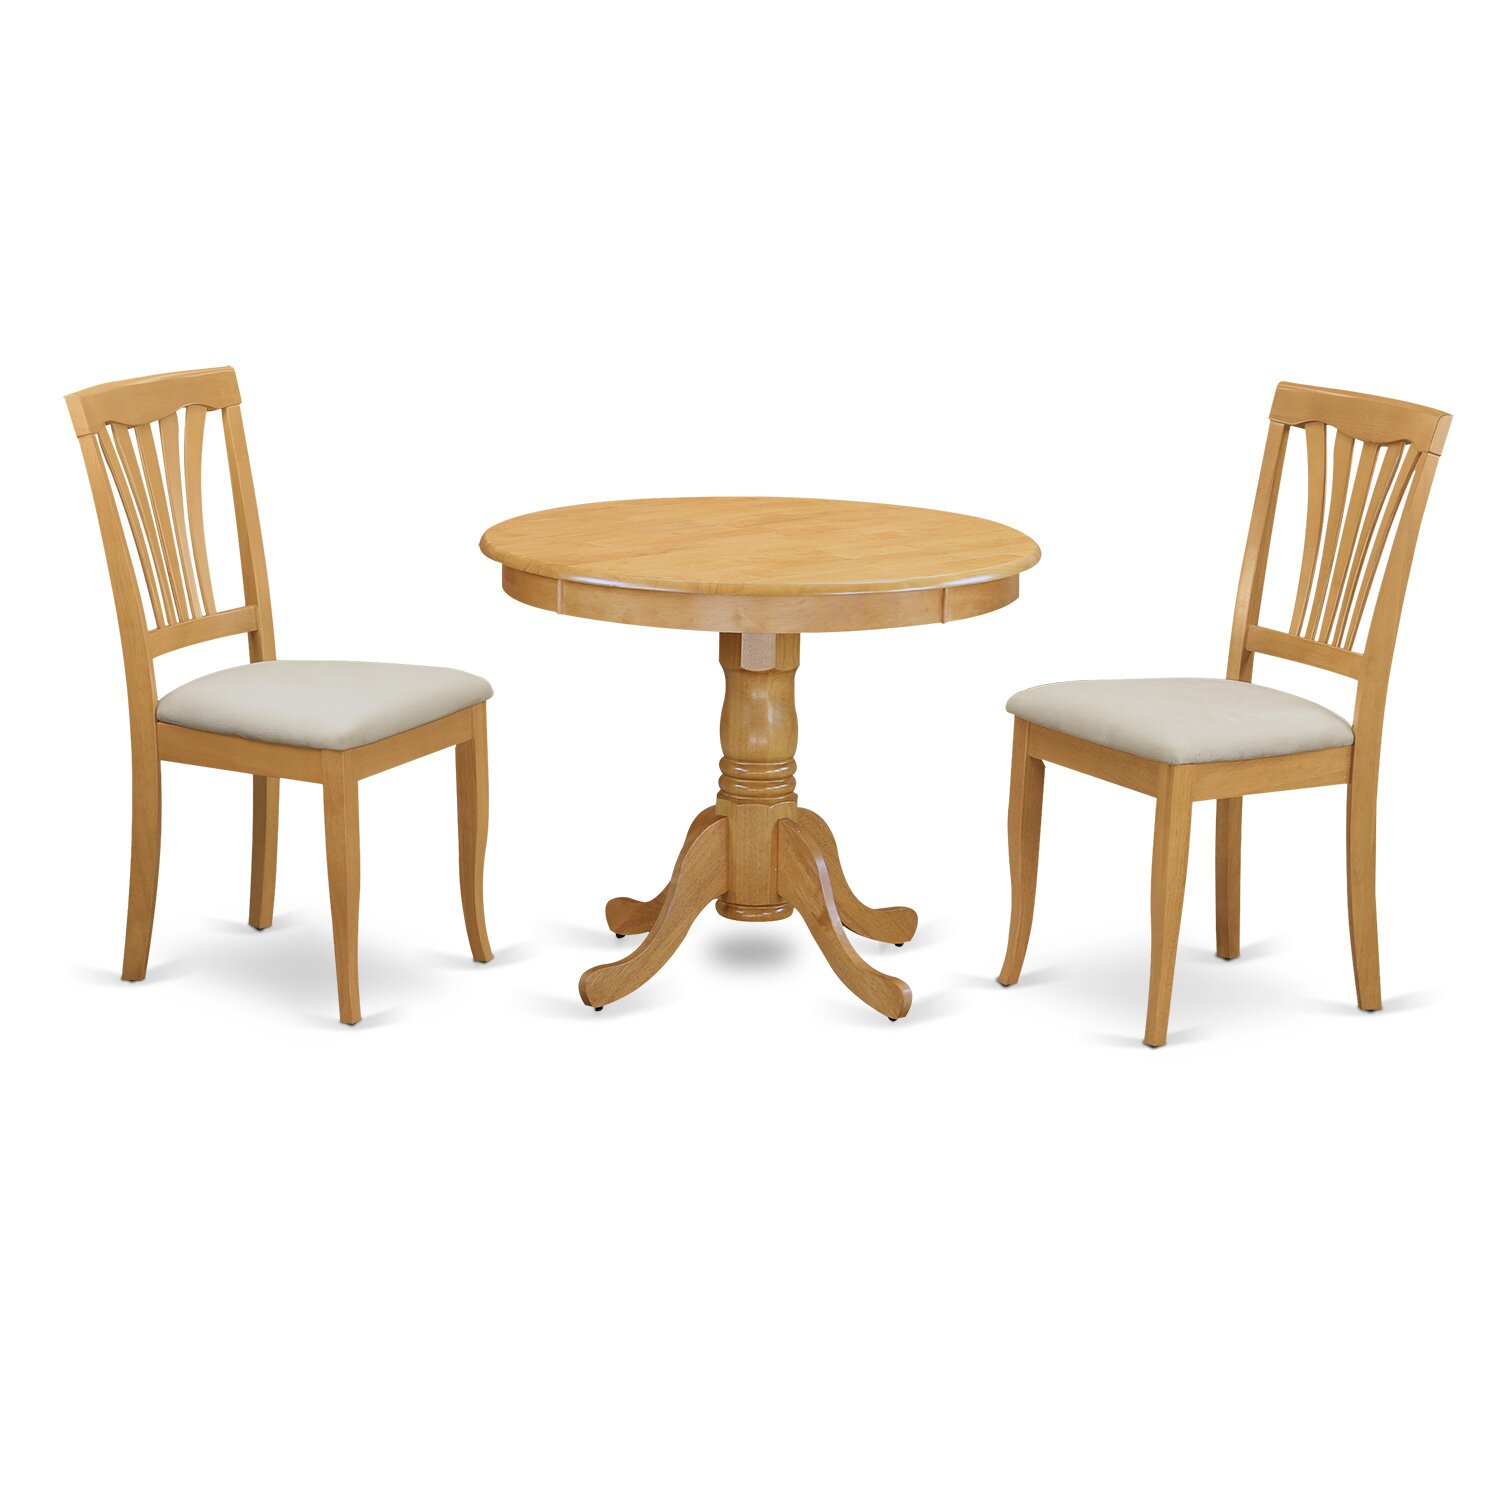 Wayfair Dining Room Chairs Curved Dining Bench Kitchen: 3 Piece Dining Set